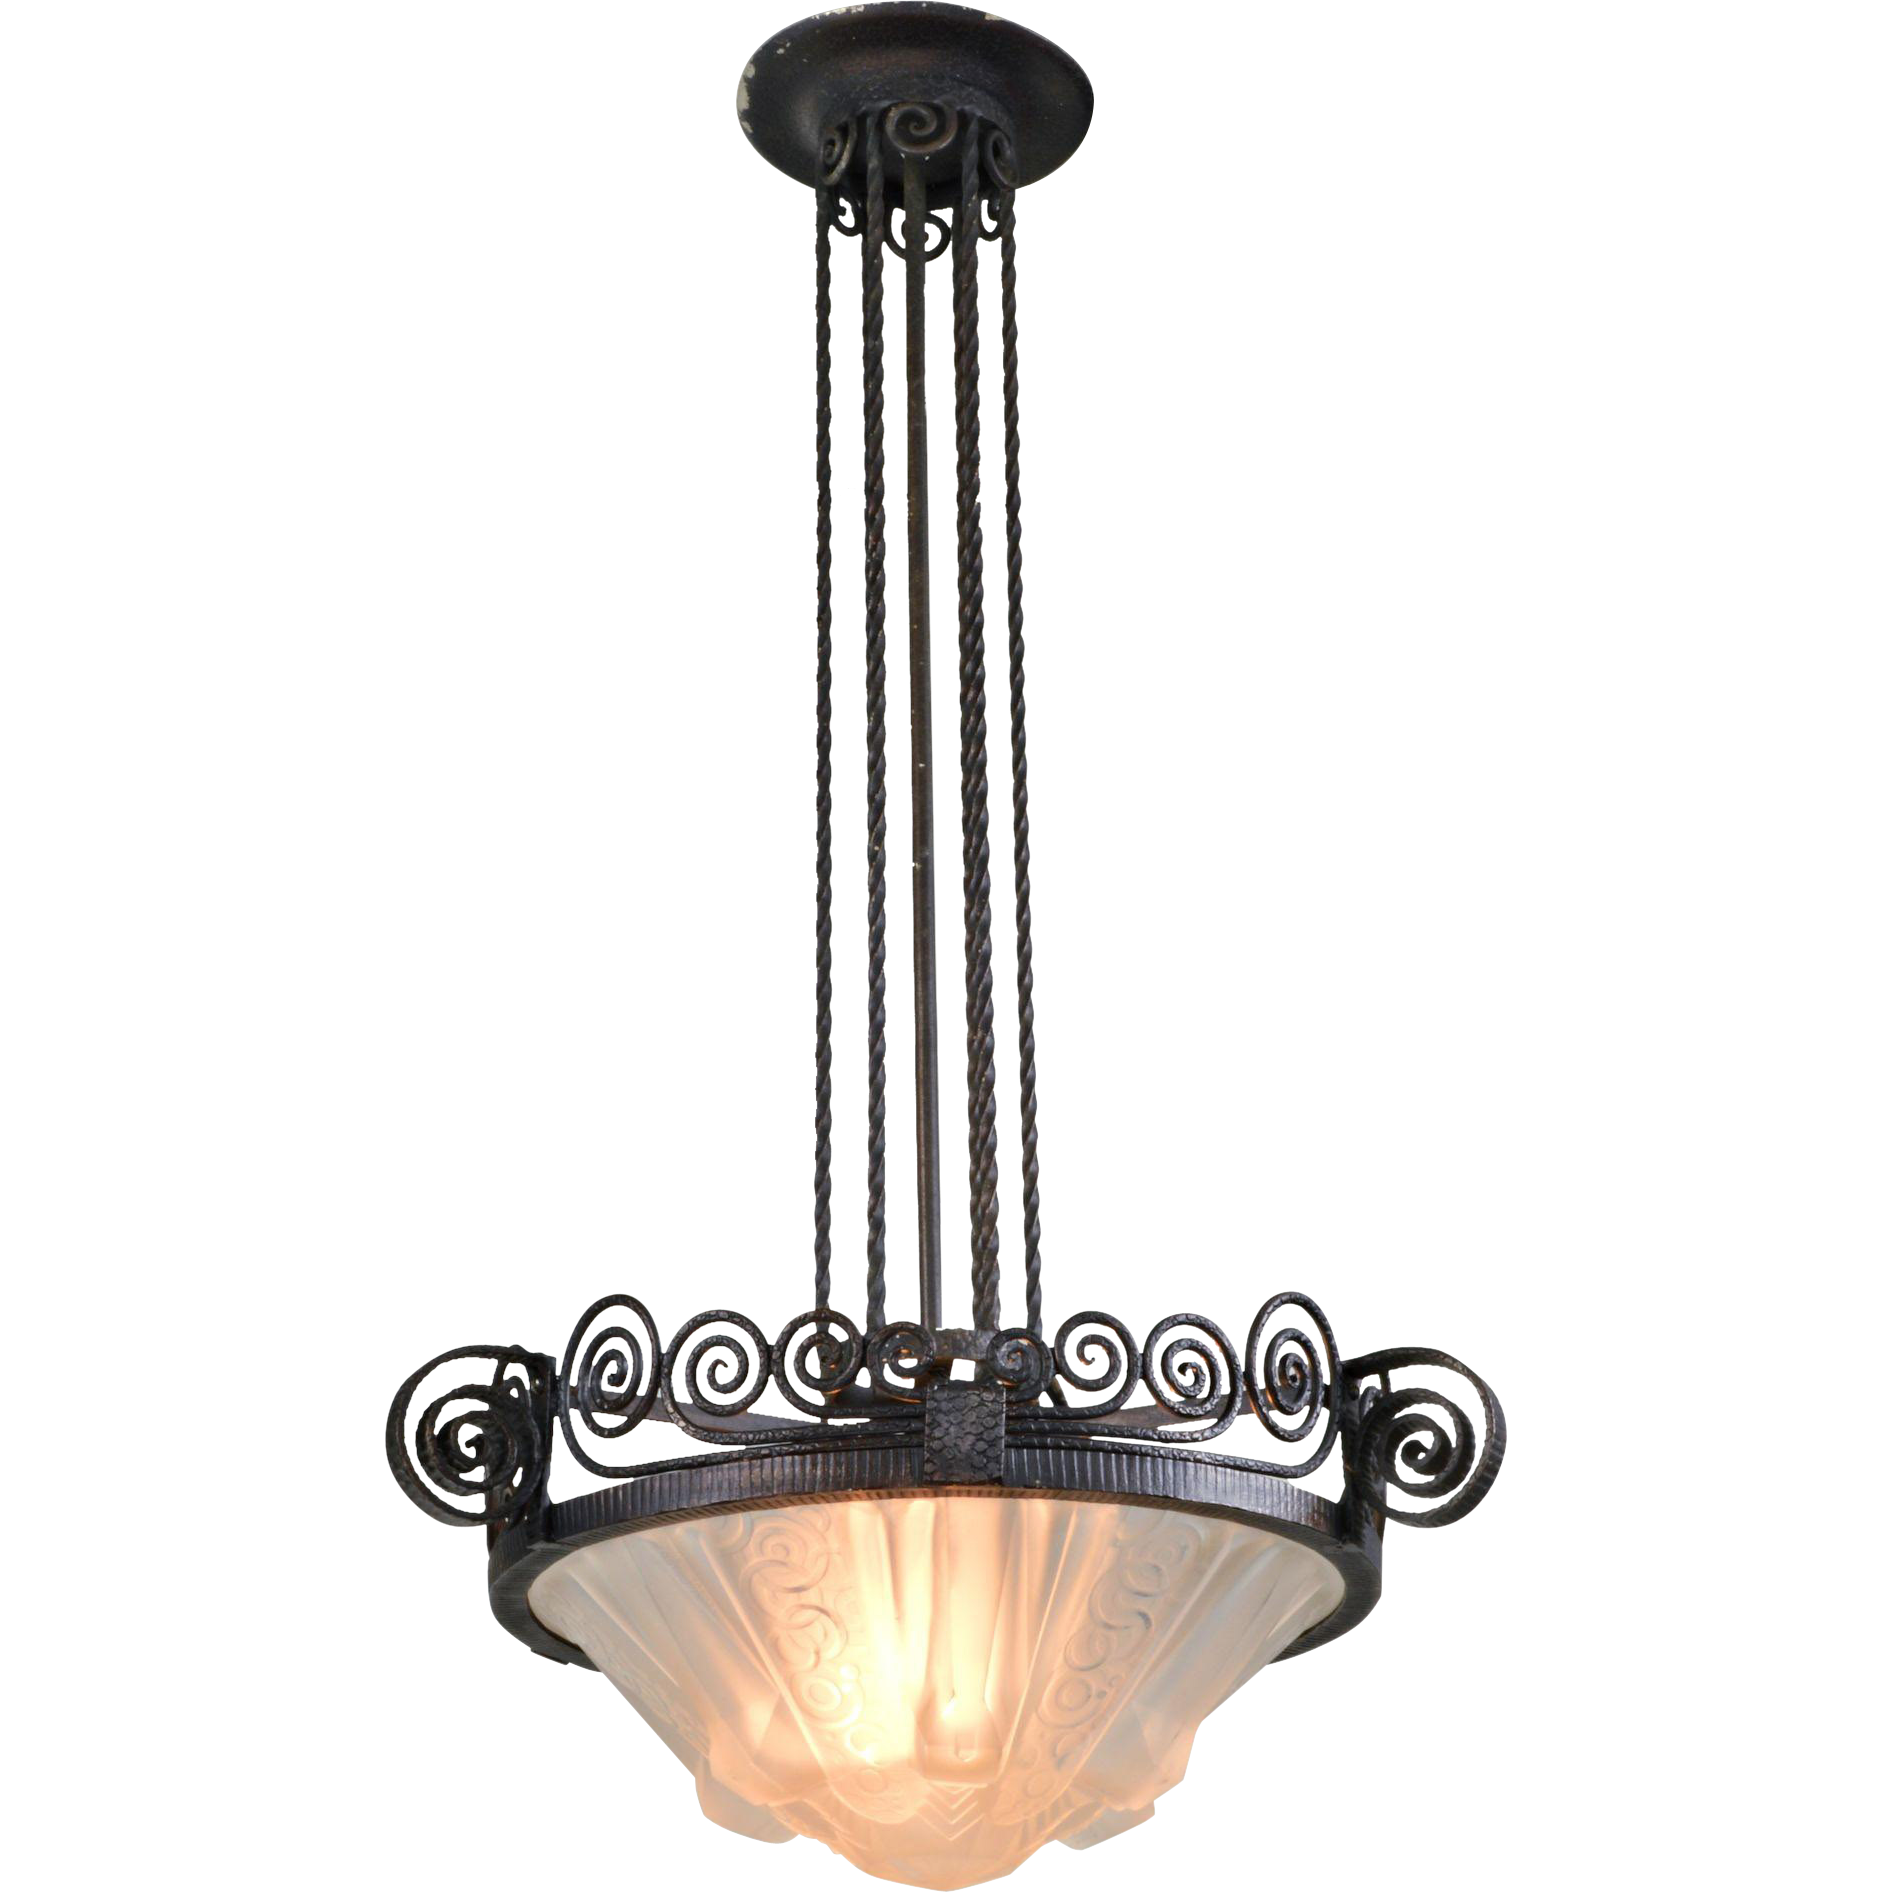 Muller Freres French Pendant Light Fixture Art Deco The Old Warehouse Ruby Lane